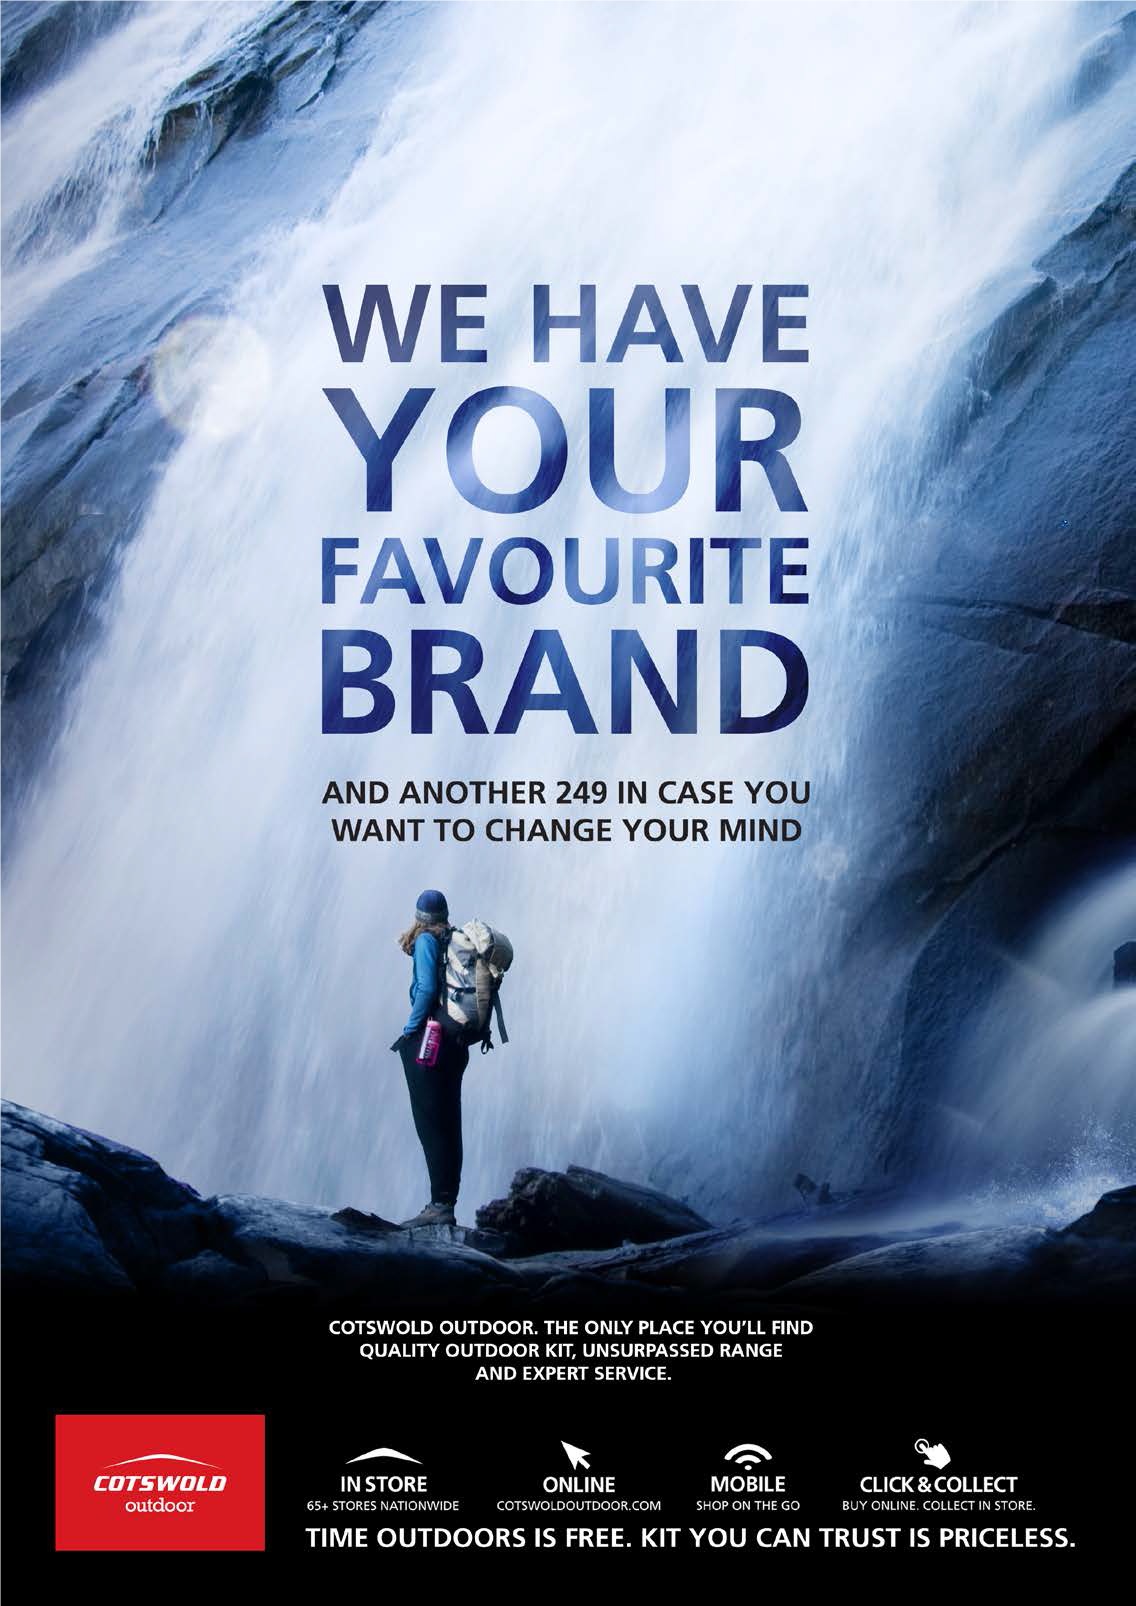 WATERFALL FAVOURITE BRAND